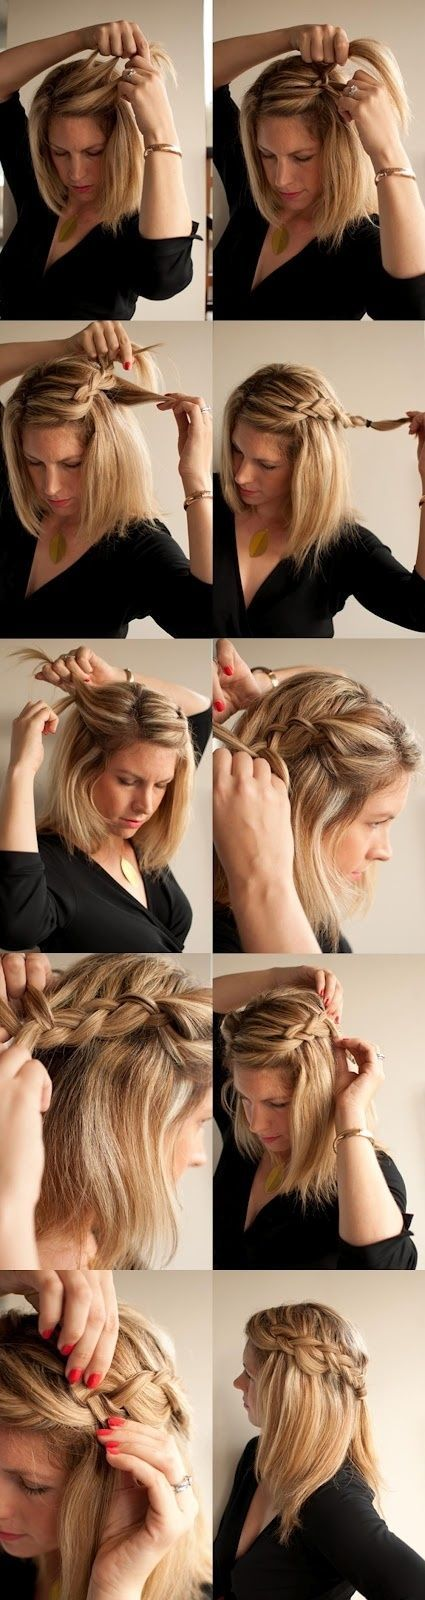 13 Interesting Tutorials for Everyday Hairstyles